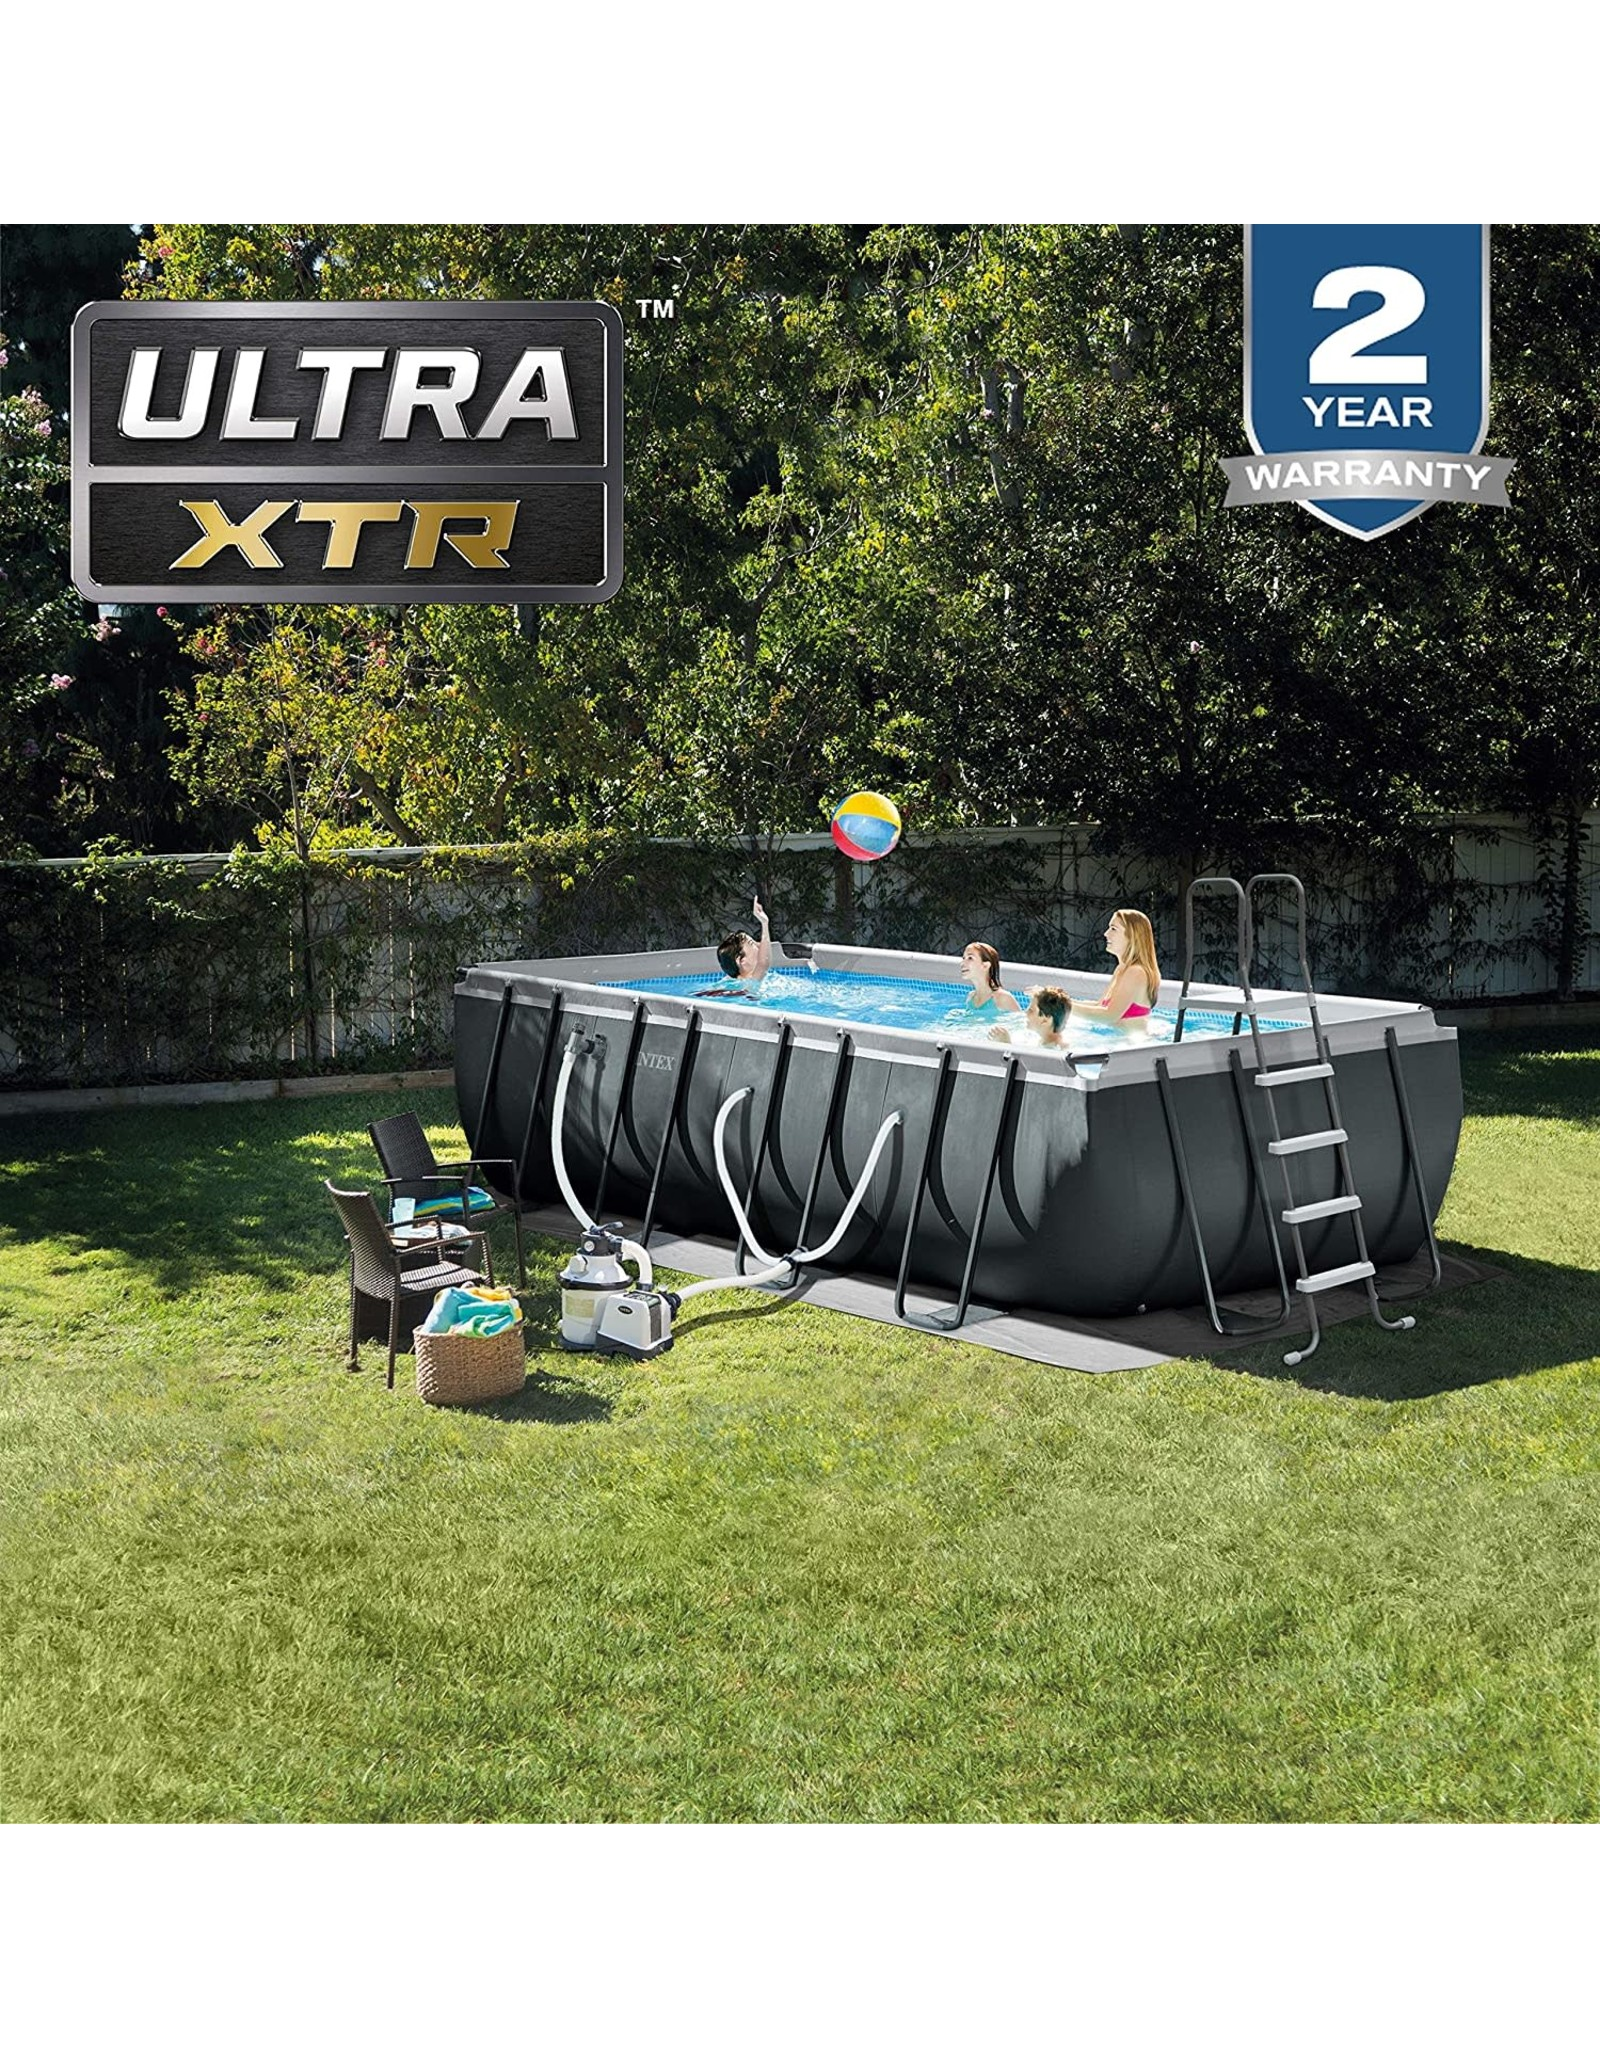 Intex Intex 18ft X 9ft X 52in Ultra XTR Rectangular Pool Set with Sand Filter Pump, Ladder, Ground Cloth & Pool Cover